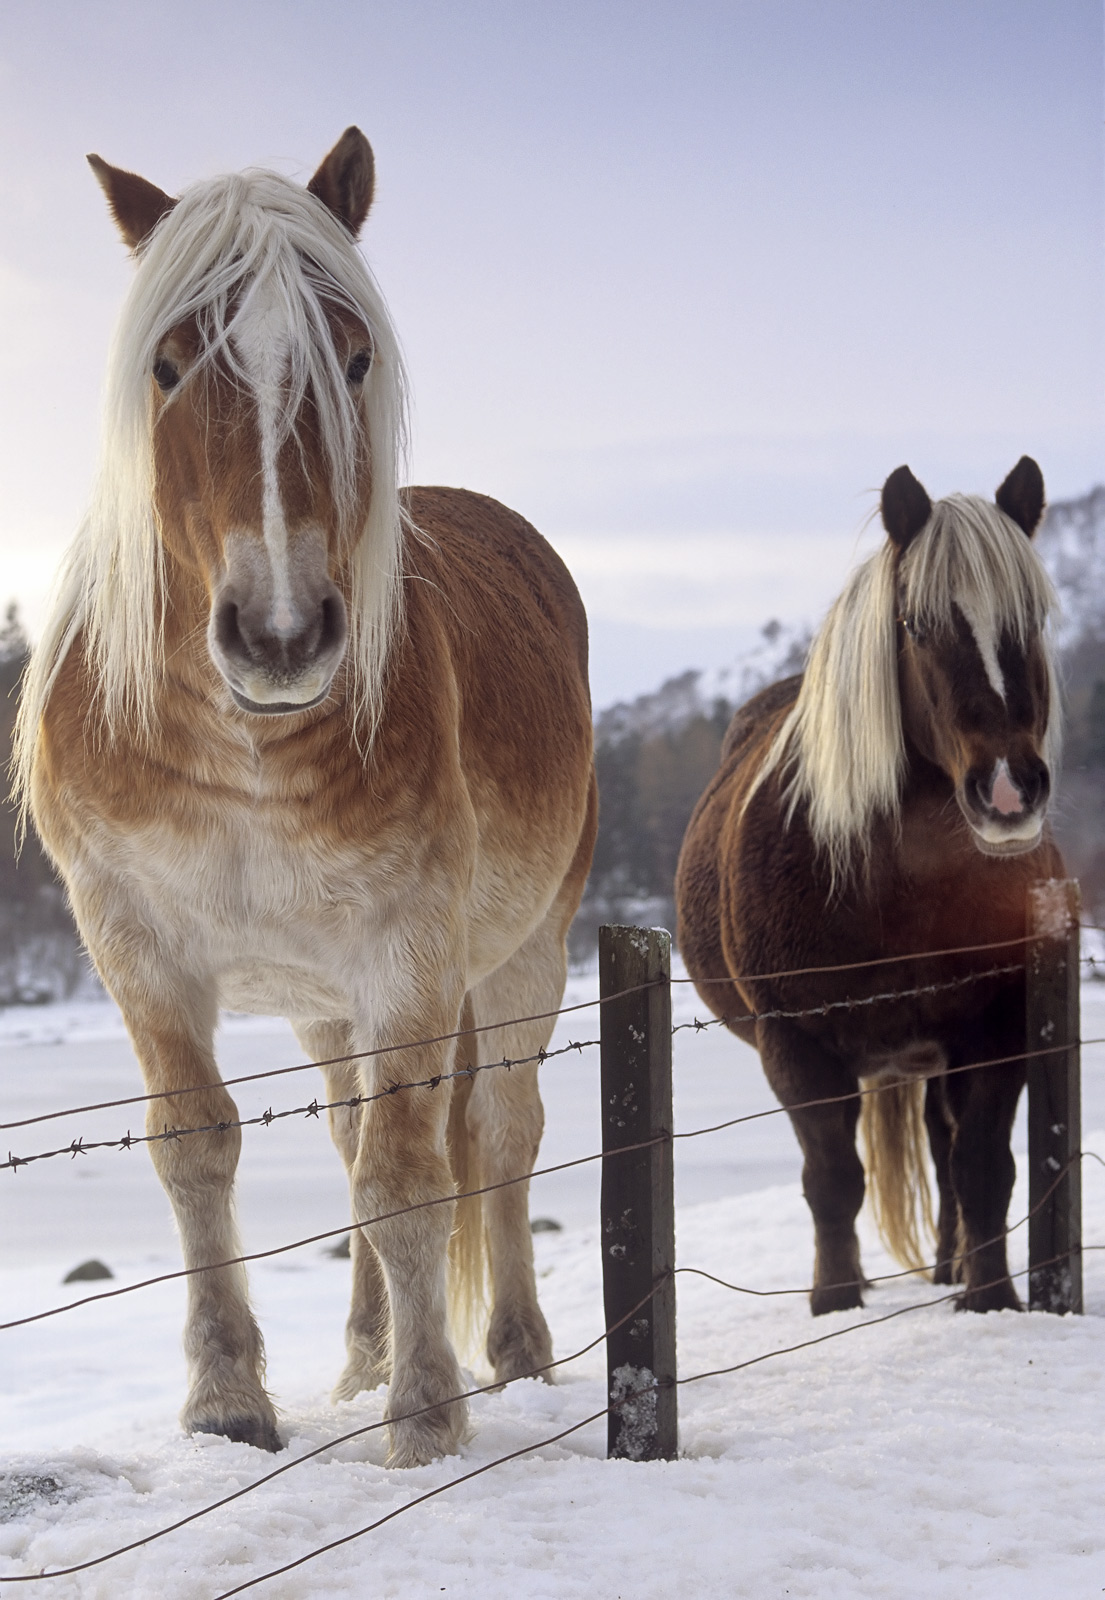 On a winters day around Loch Ness I spied these two beautiful horses one a witha rich chestnut coat and a fabulous blond...